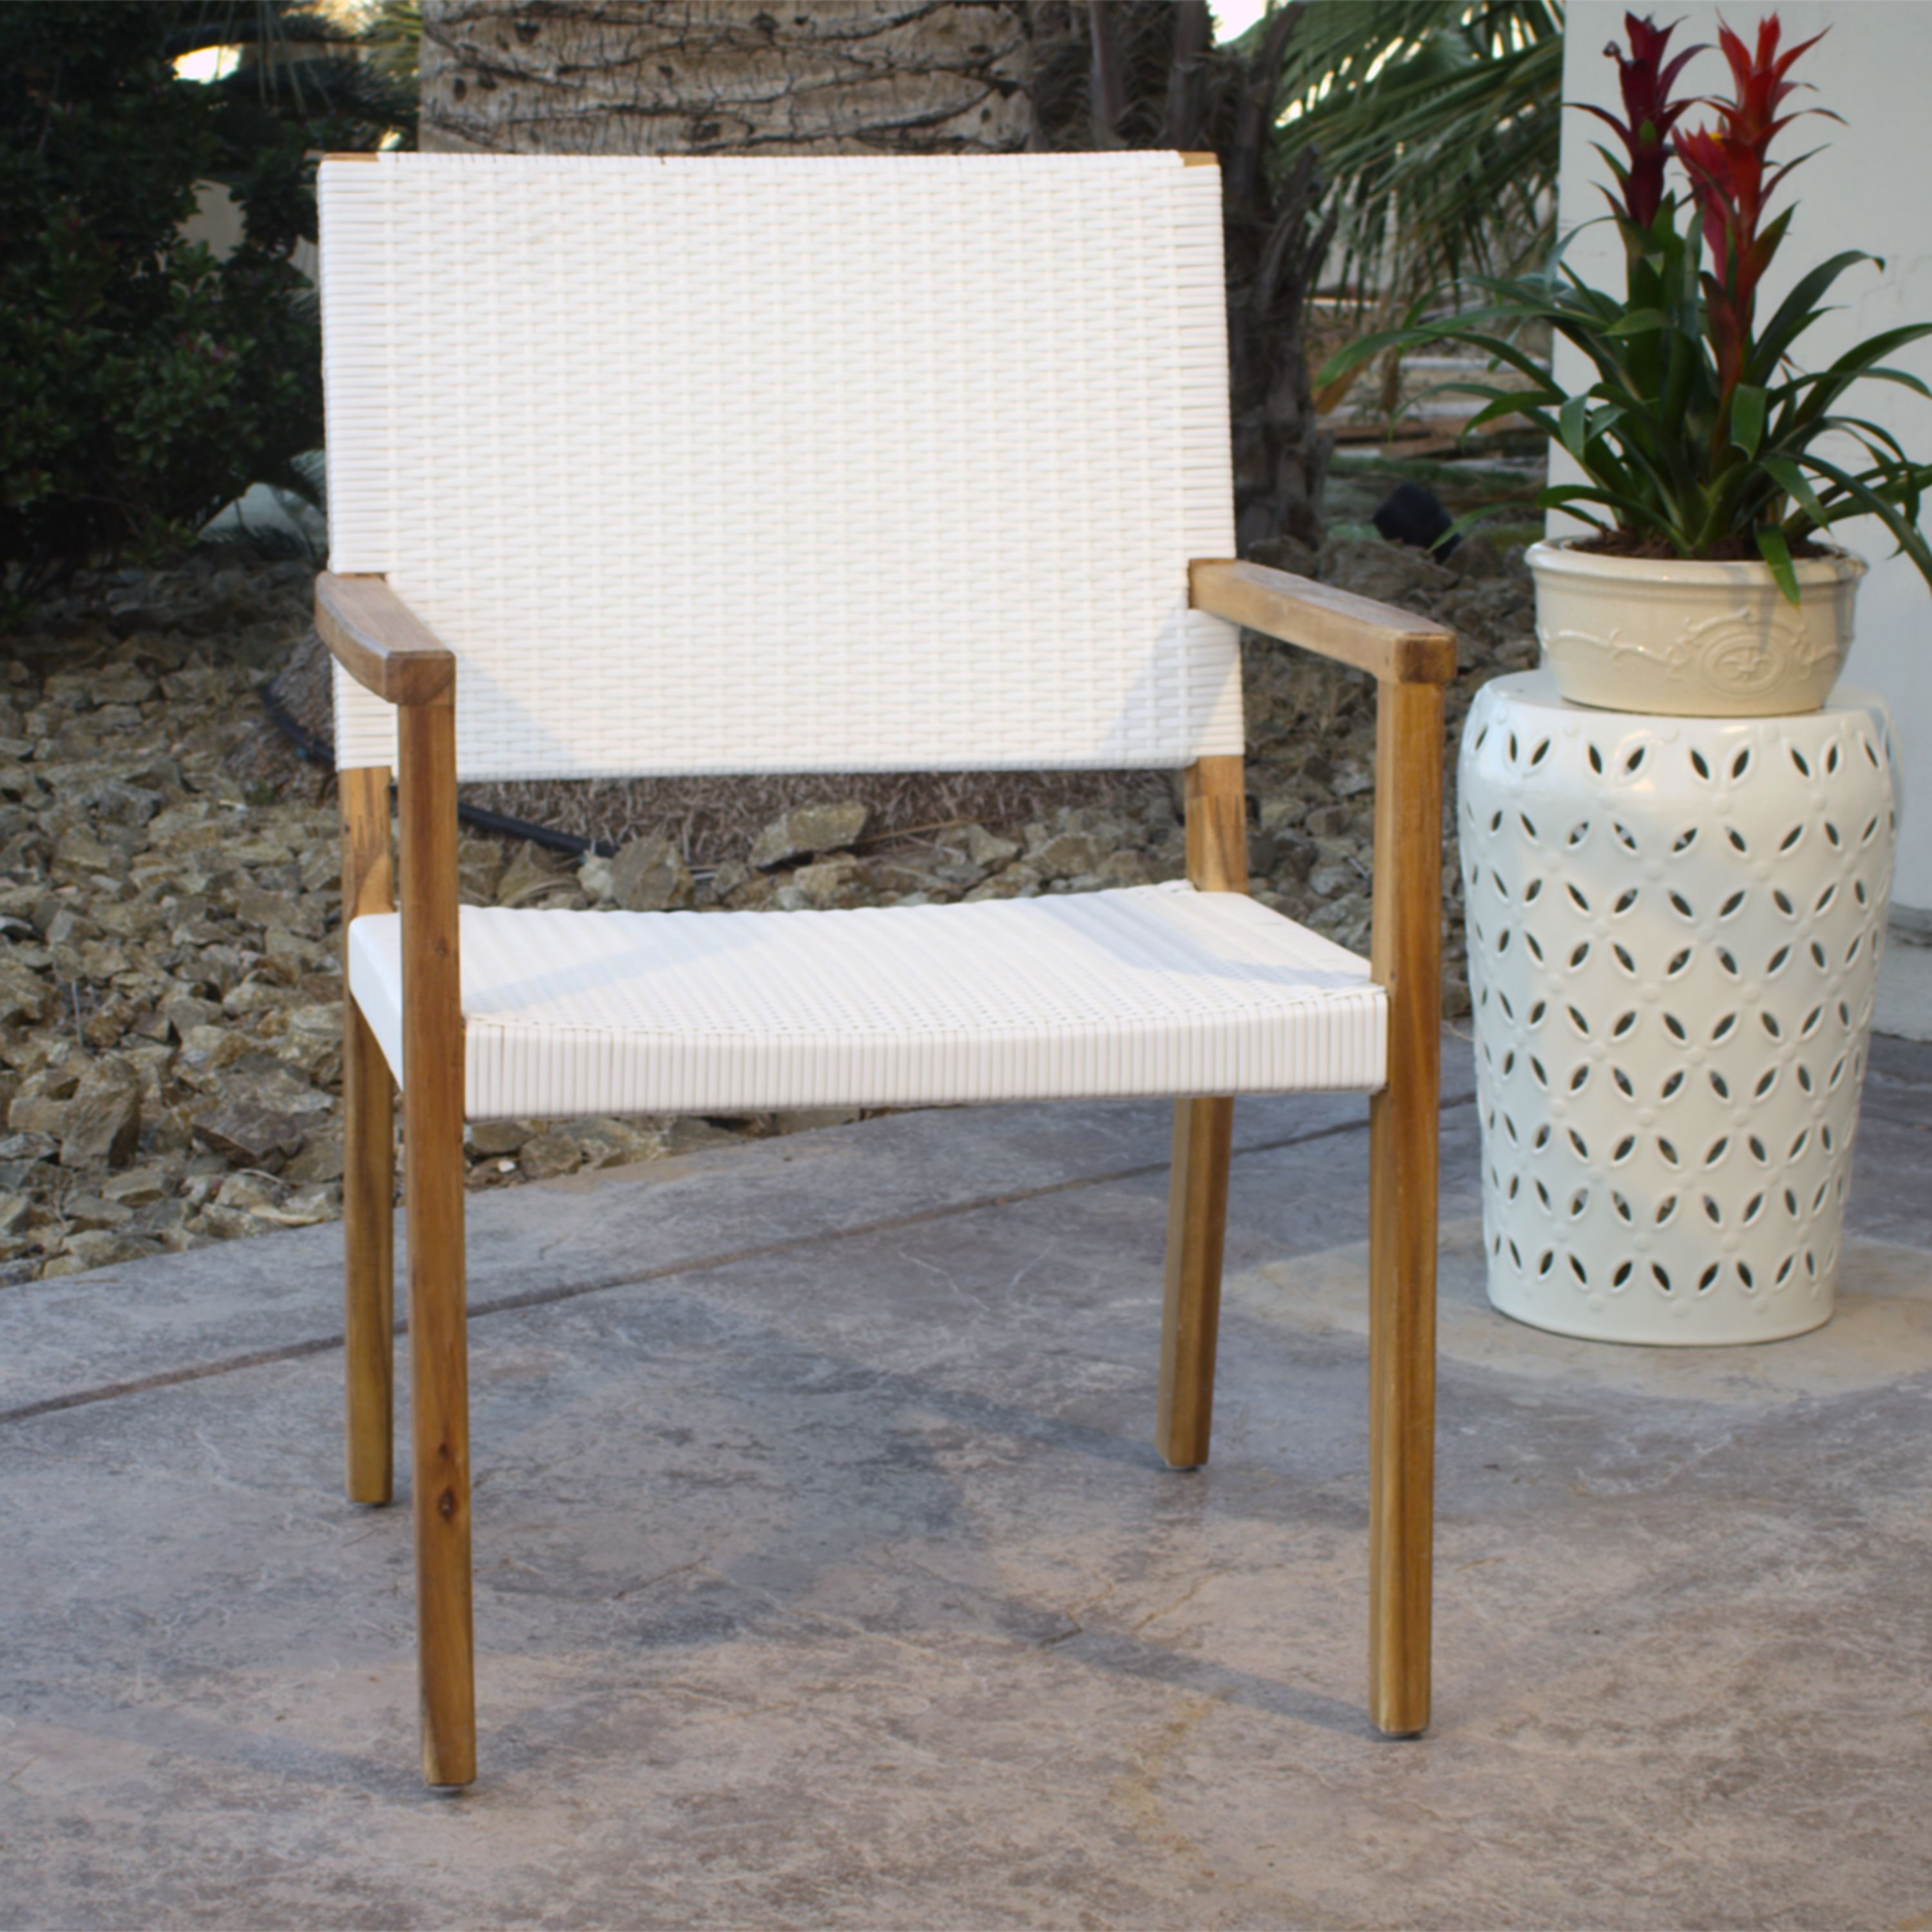 Attractive Combining Woven White All Weather Wicker And Acacia Wood, Our Chair  Captures The Casual Luxury Found On The Coasts Of Italy.